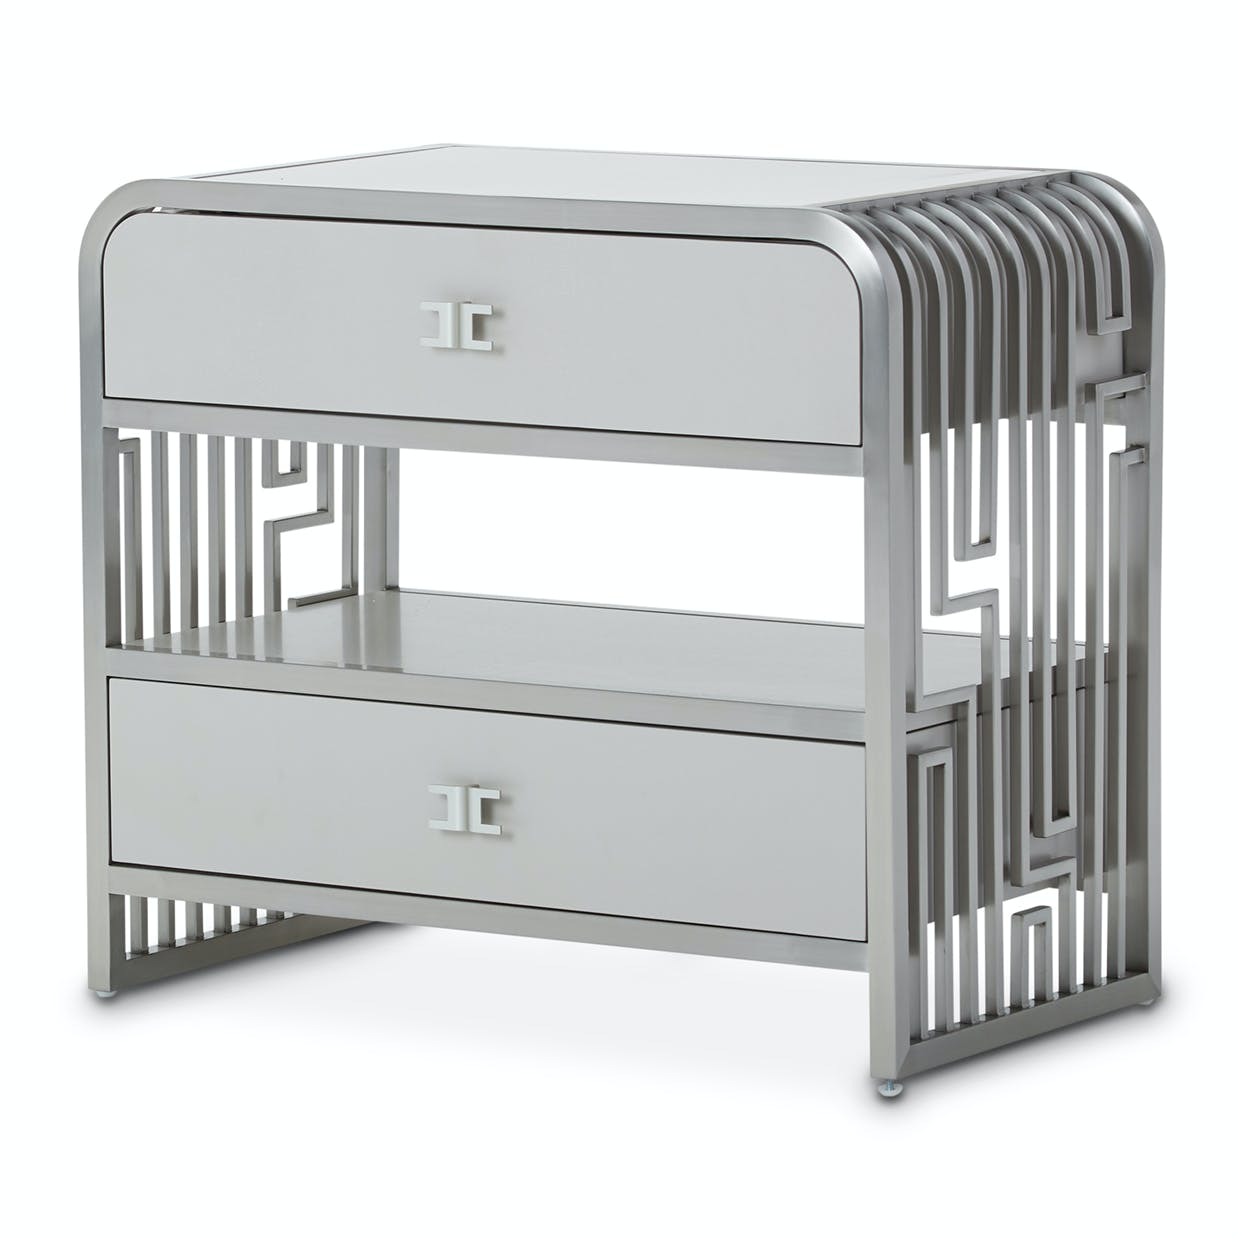 Aico Furniture 9006042 13 Bedroom 2 Drawer Nightstand